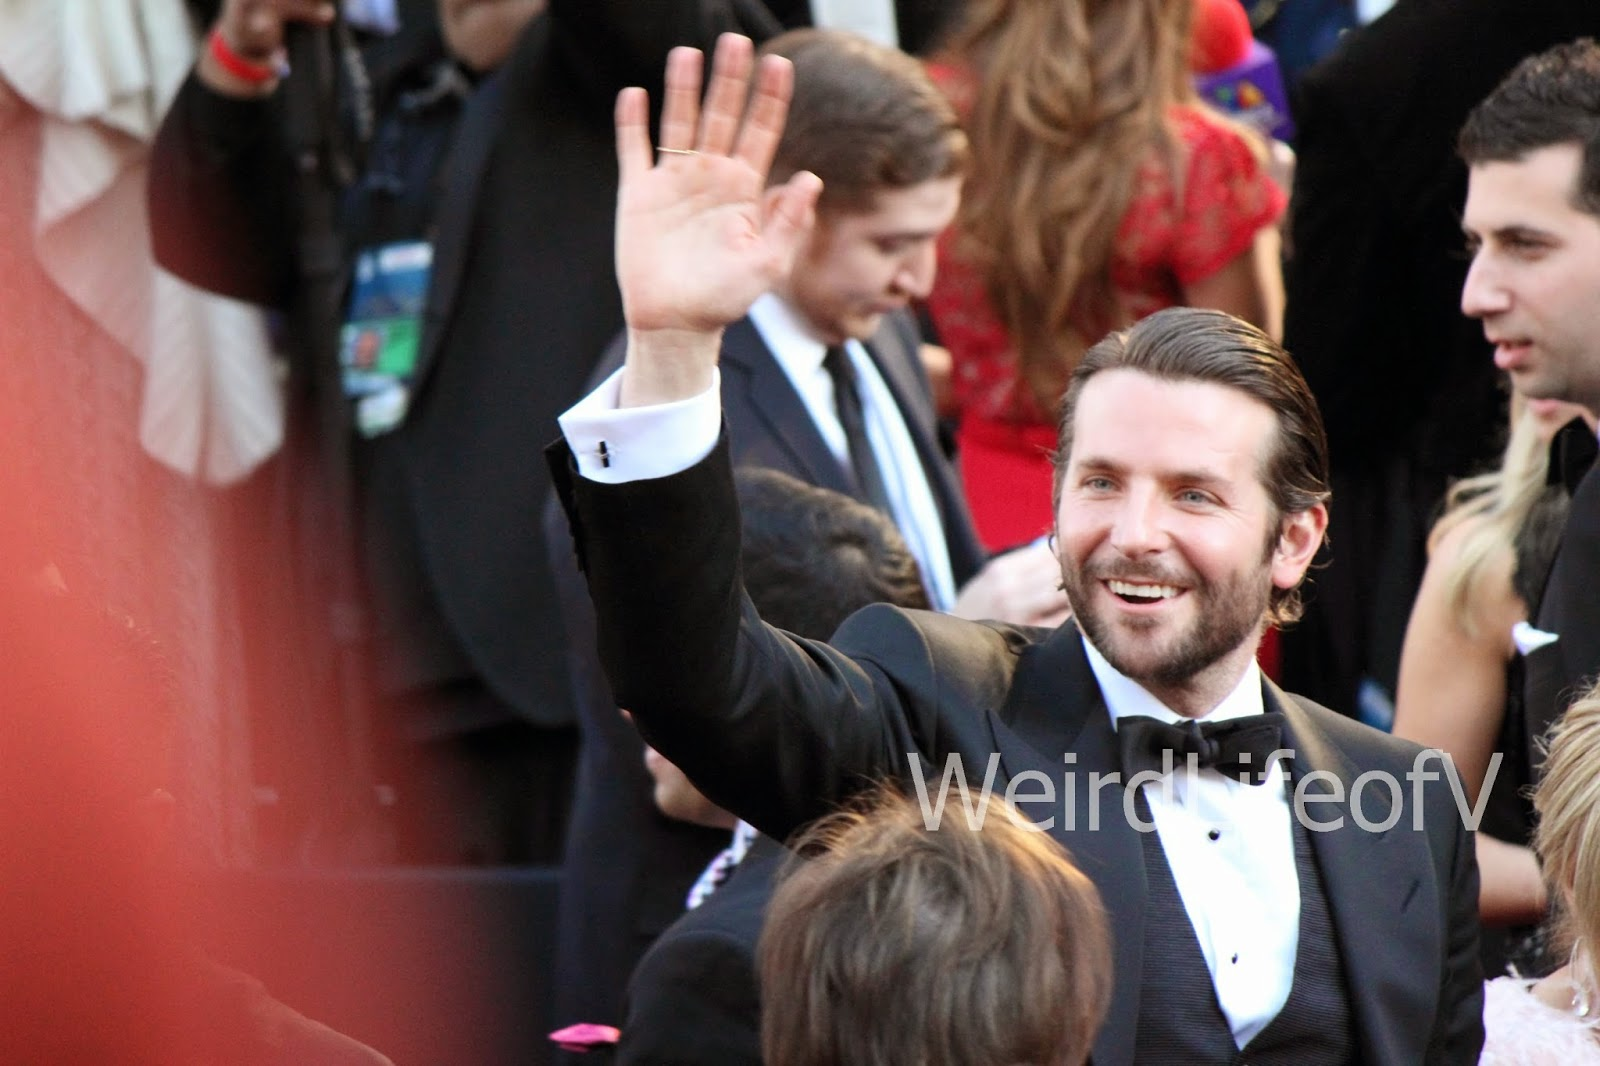 Bradley Cooper waves to the fans on the red carpet for the 2013 Oscars